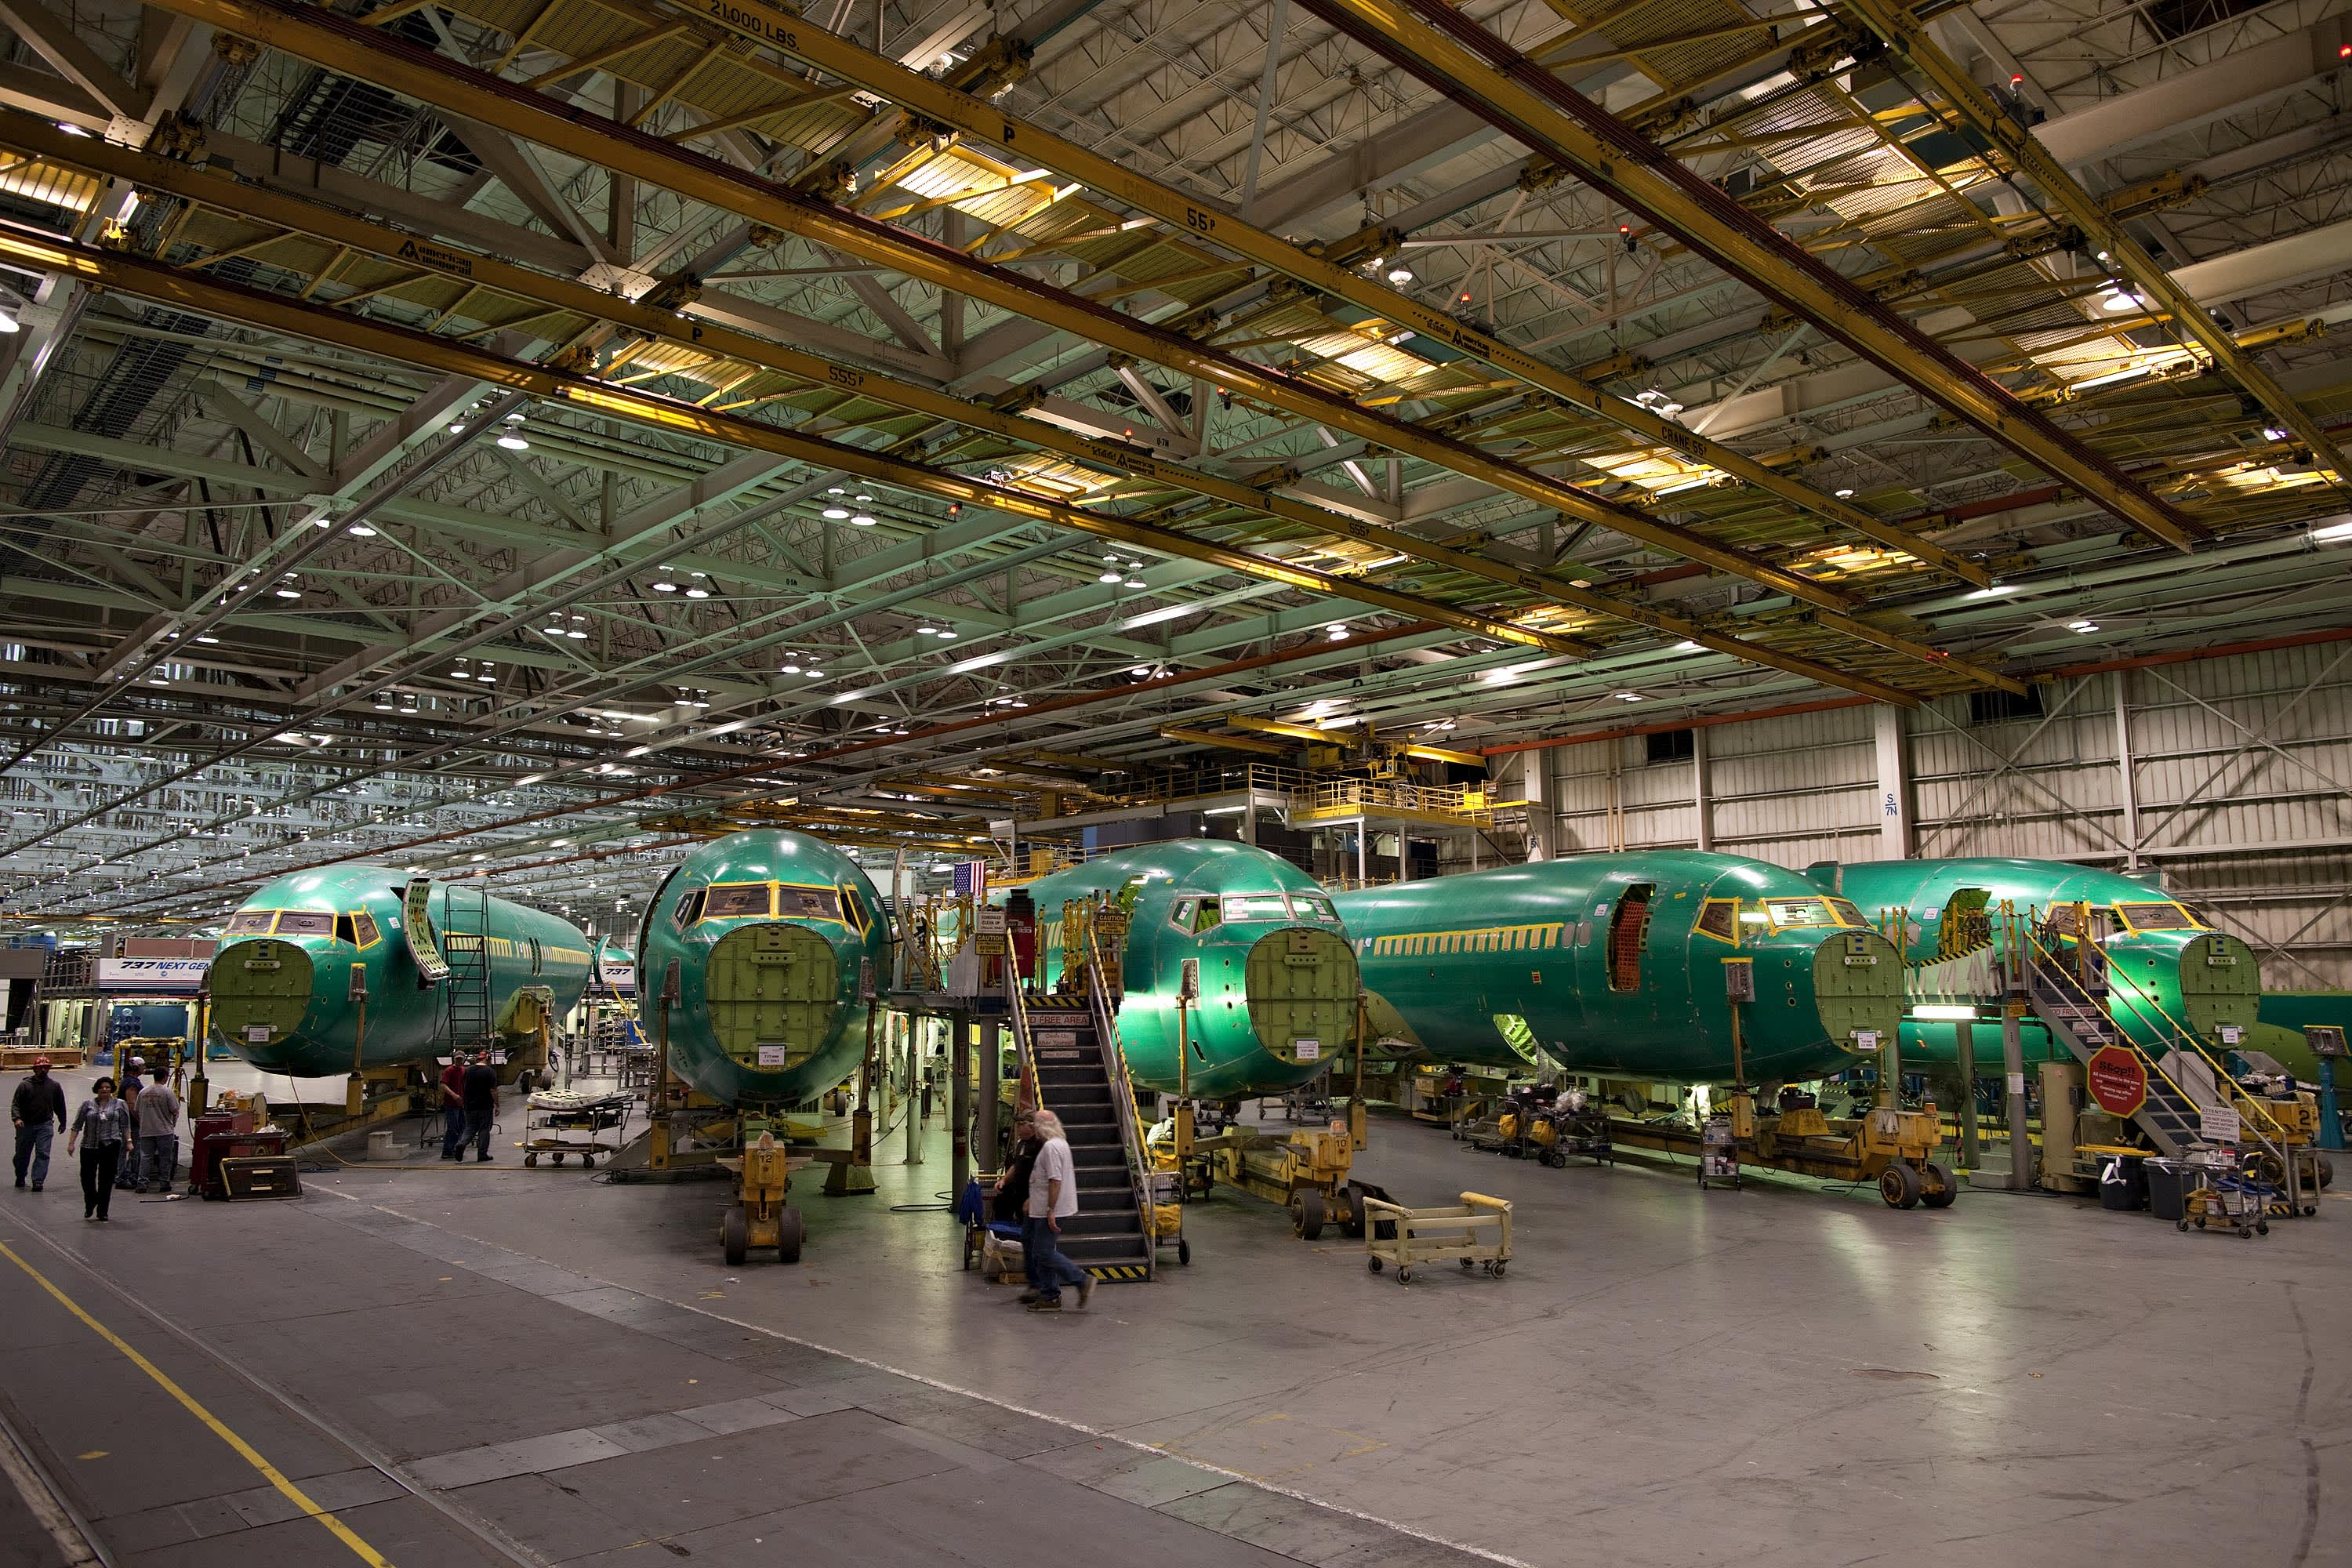 Boeing to suppliers: No 737 Max parts for a month as crisis prompts production halt